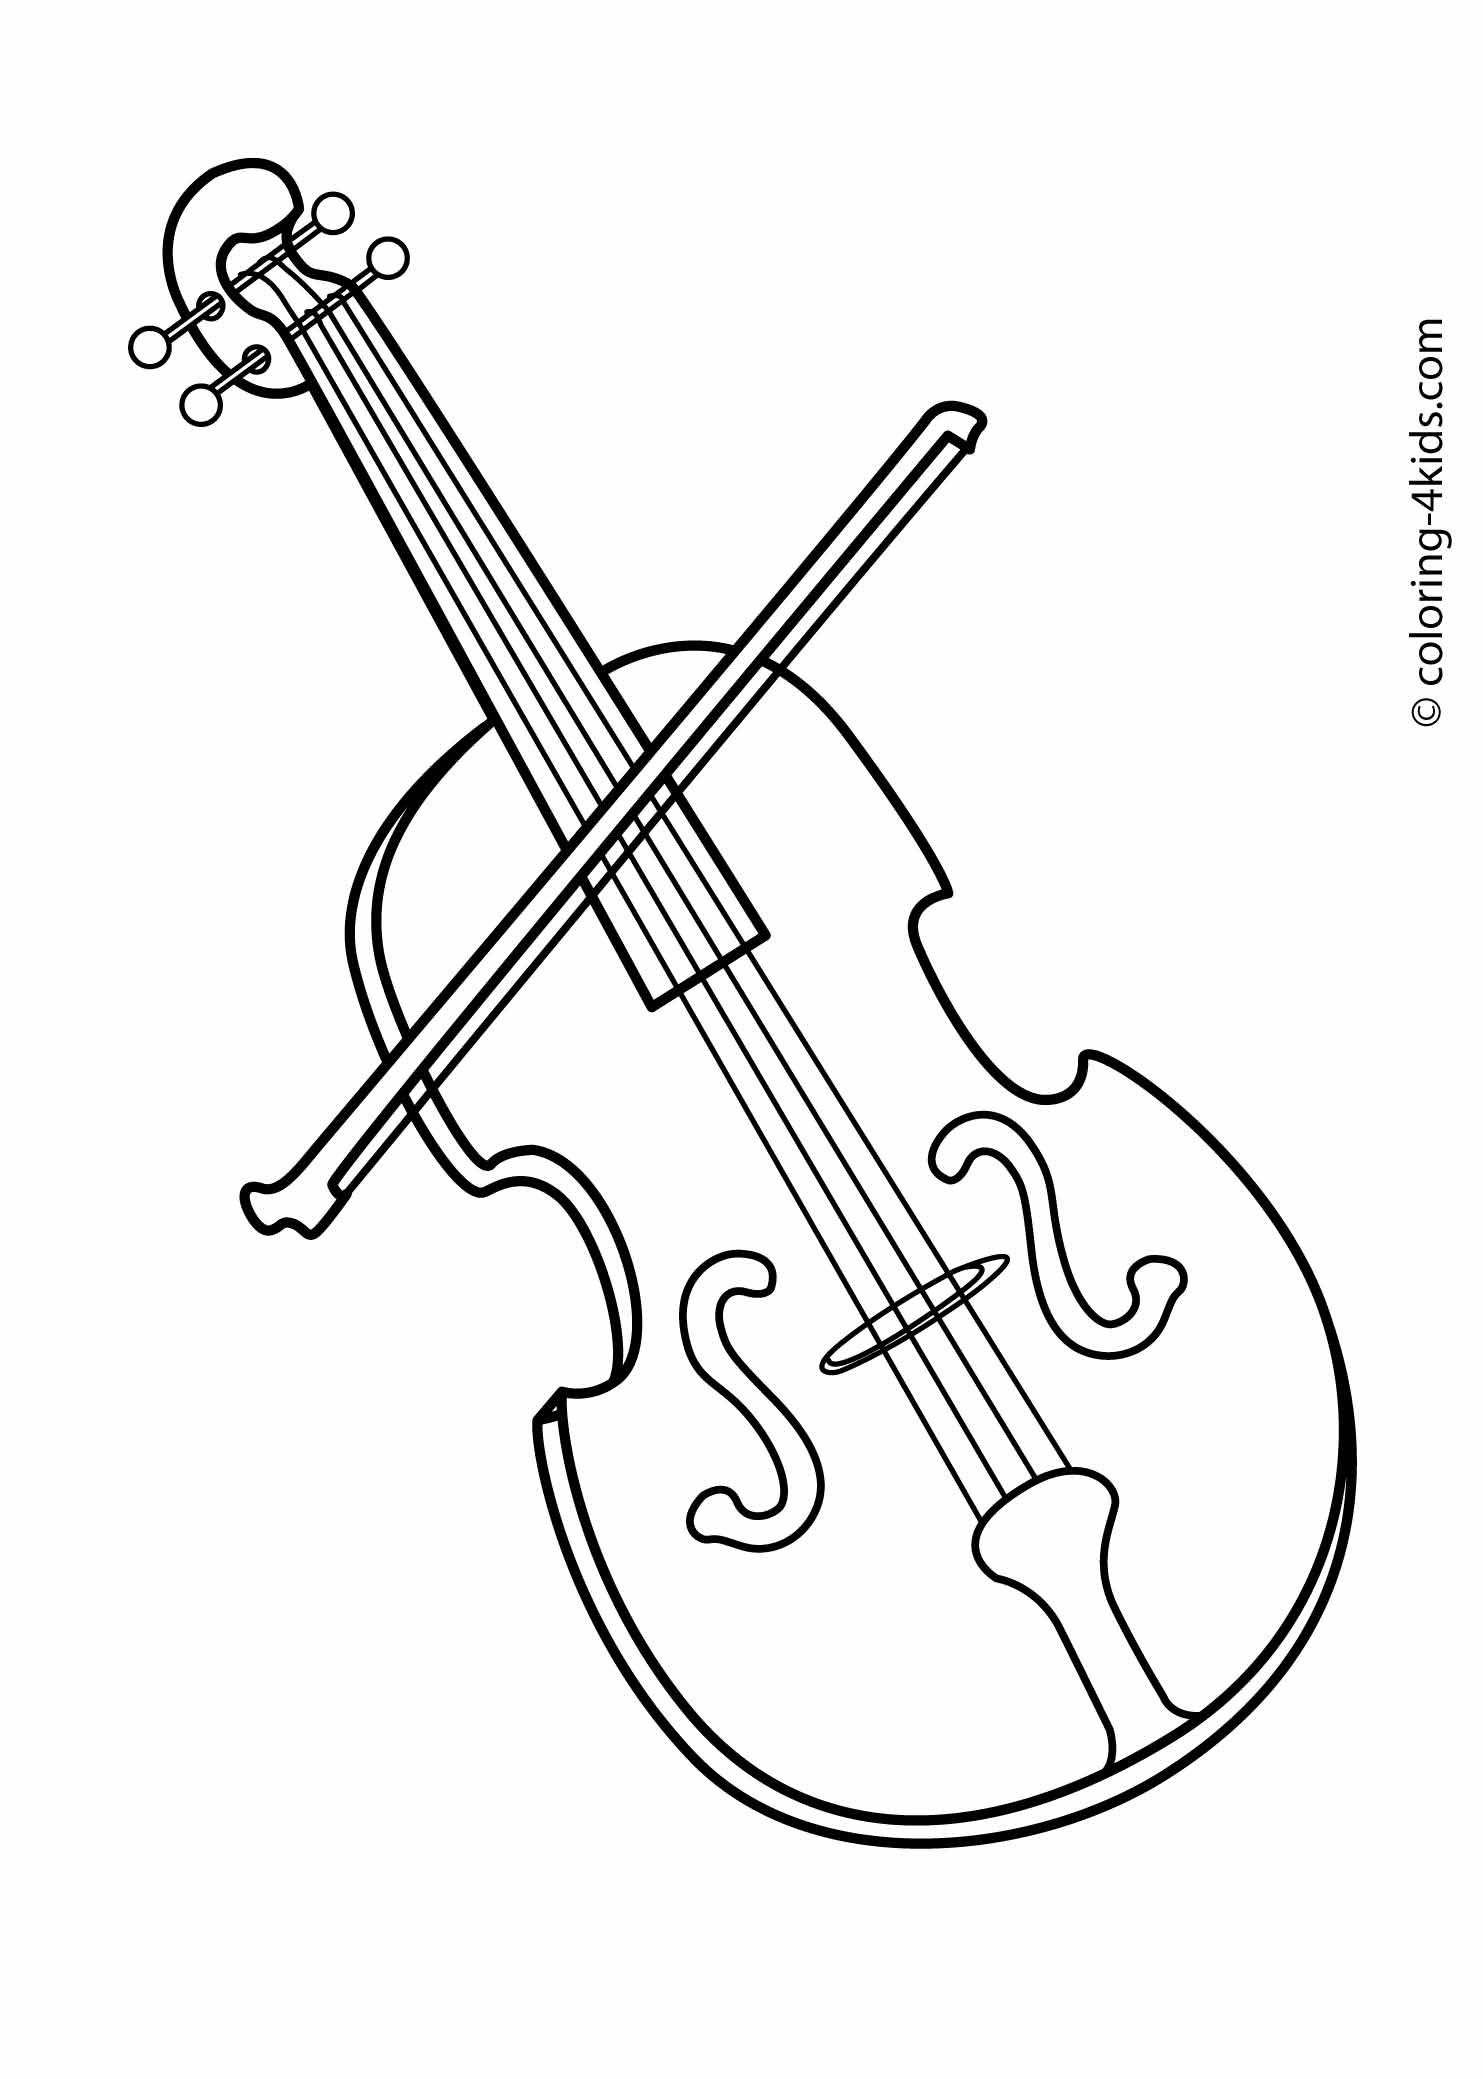 free printable coloring pages of musical instruments nod printable coloring page instruments for musical of printable instruments pages musical free coloring